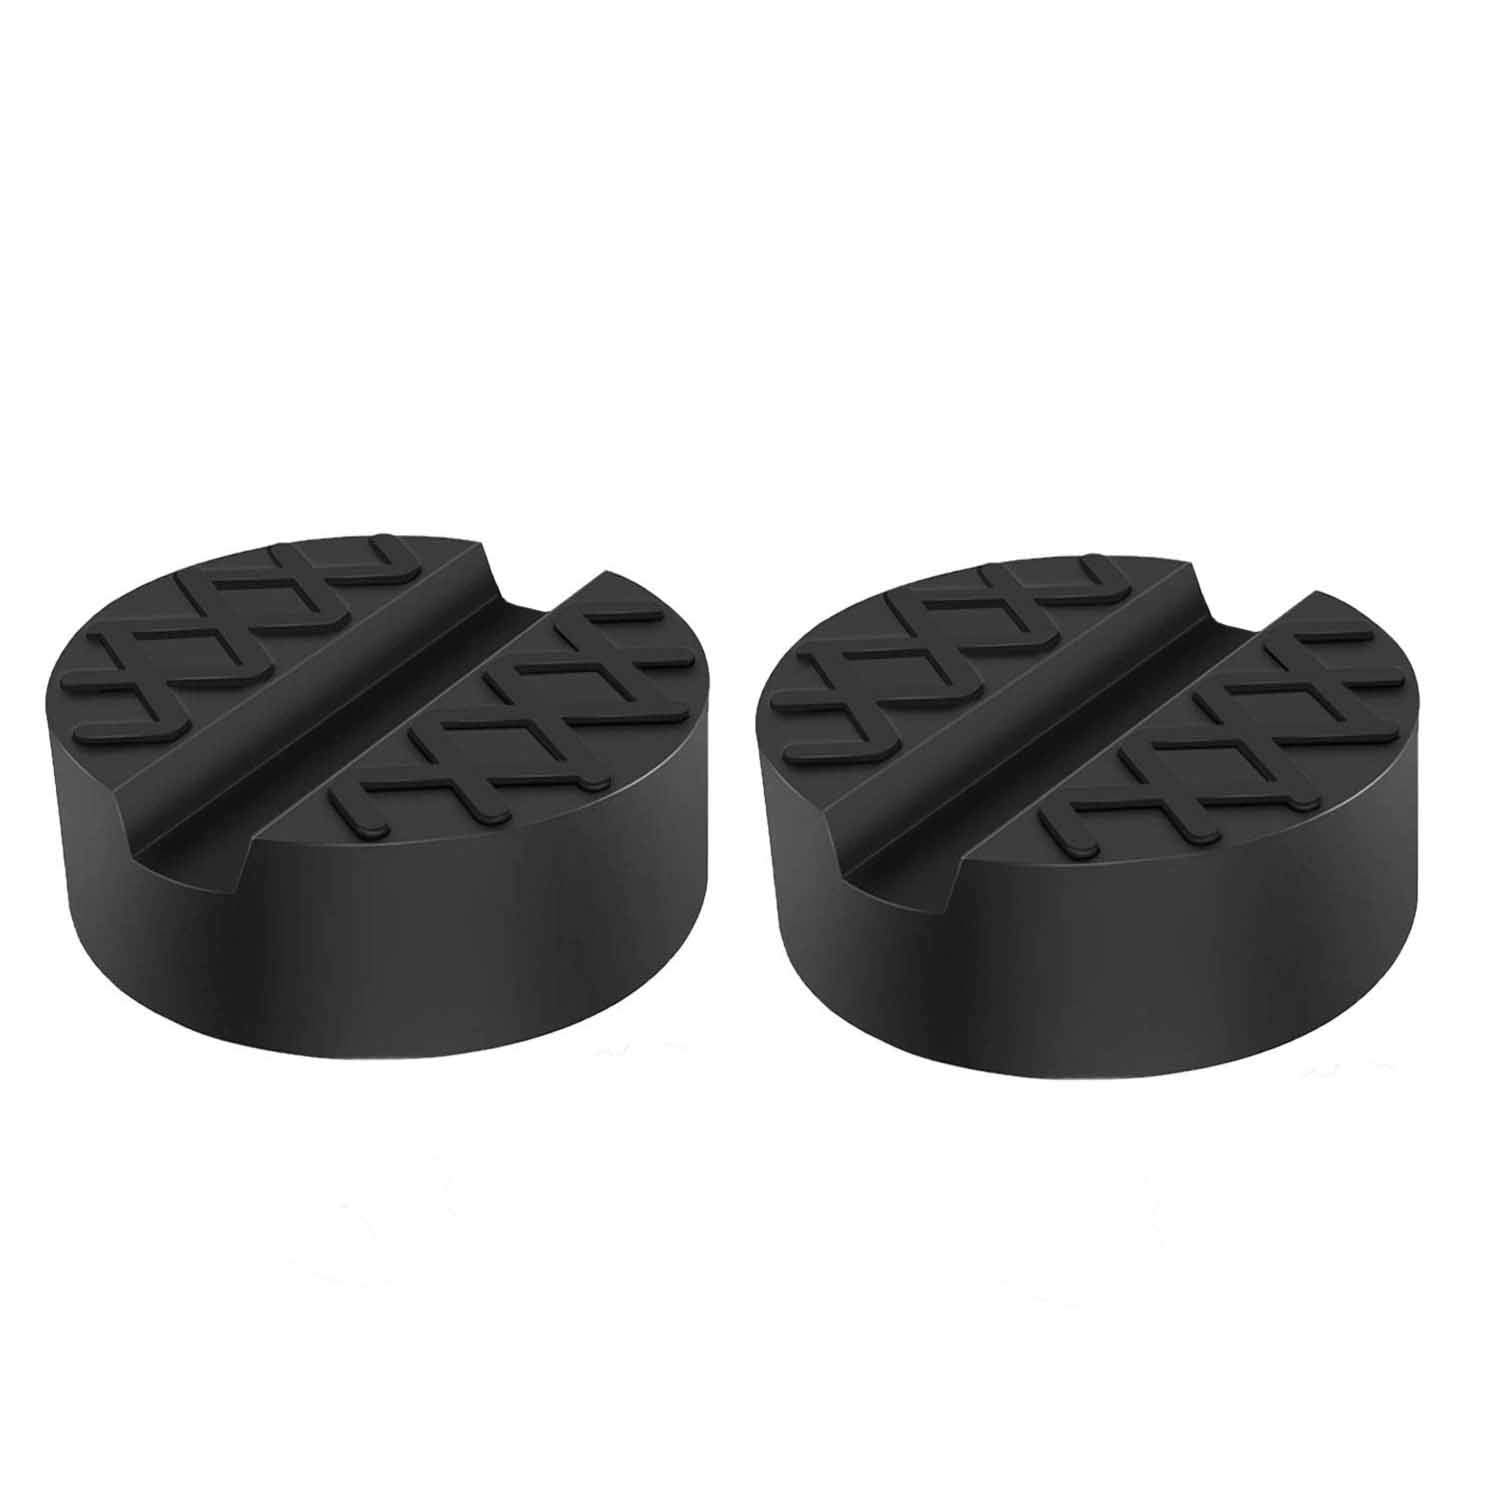 Adaptateur /à Coussin /à Sol Car Jack Rubber Pad 2 Pack Universal Slotted Frame Rail Support Protector Bloc Trolley Jack